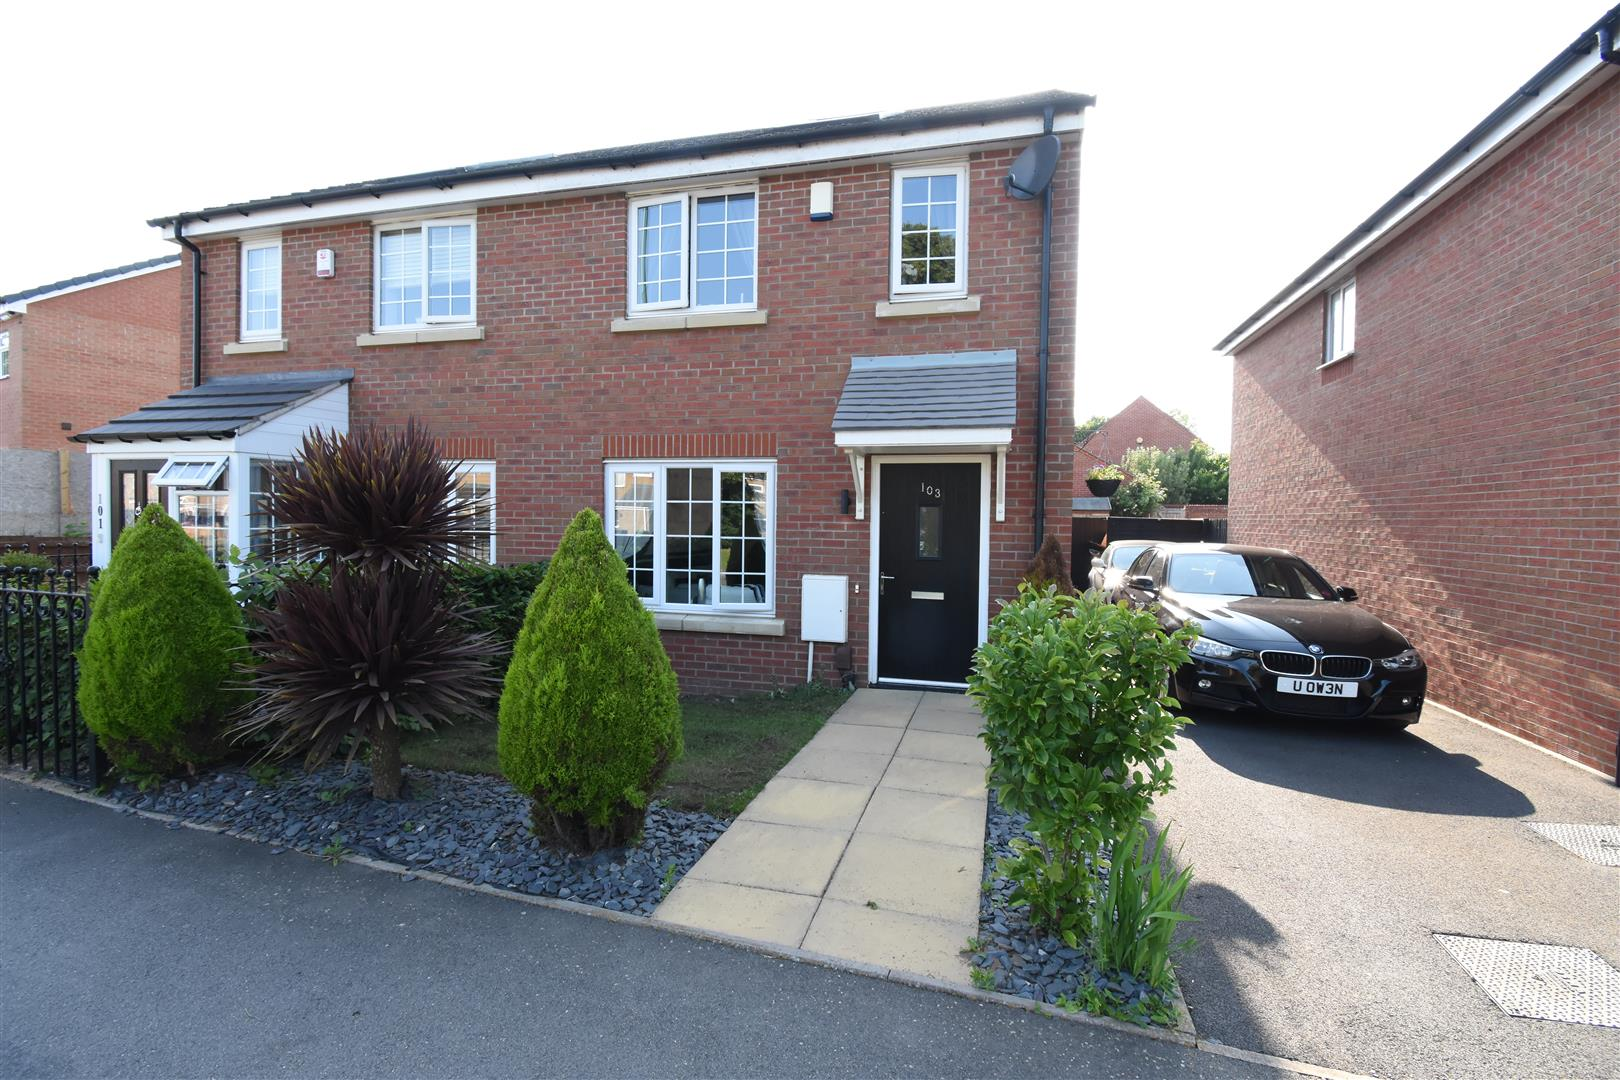 3 bed house for sale in Lanchester Way, Castle Bromwich, Birmingham, B36